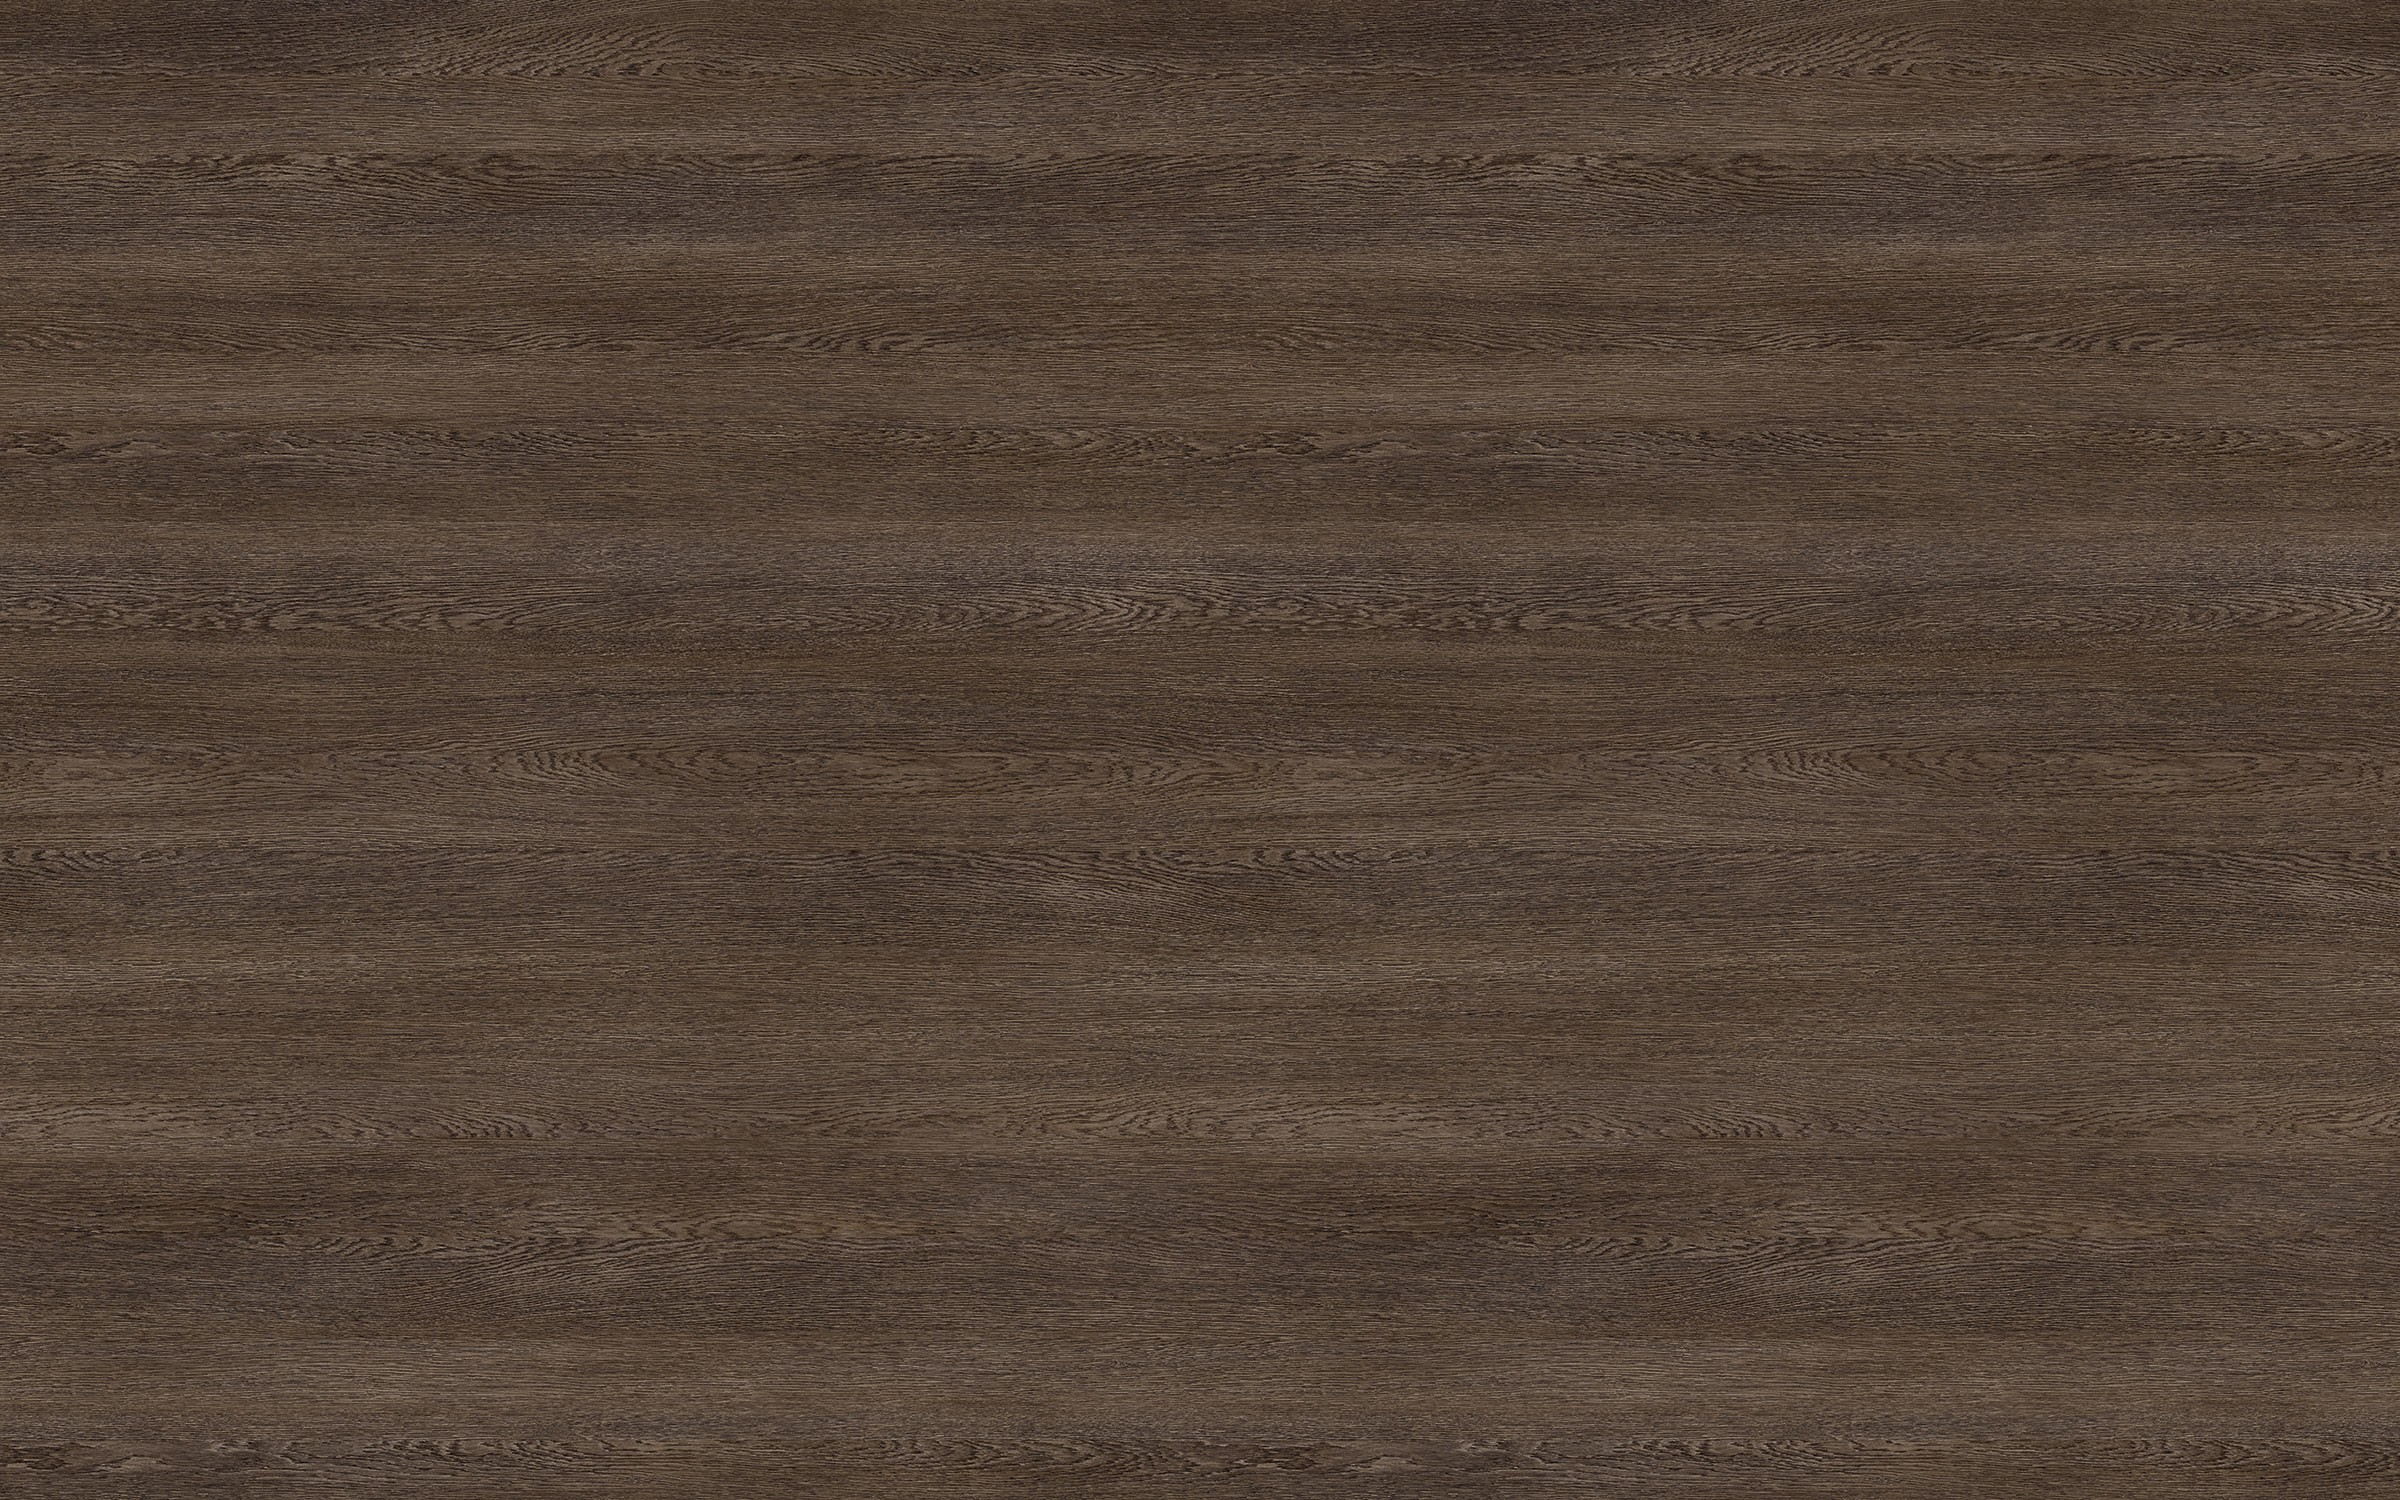 8206k Saddle Oak Laminate Countertops